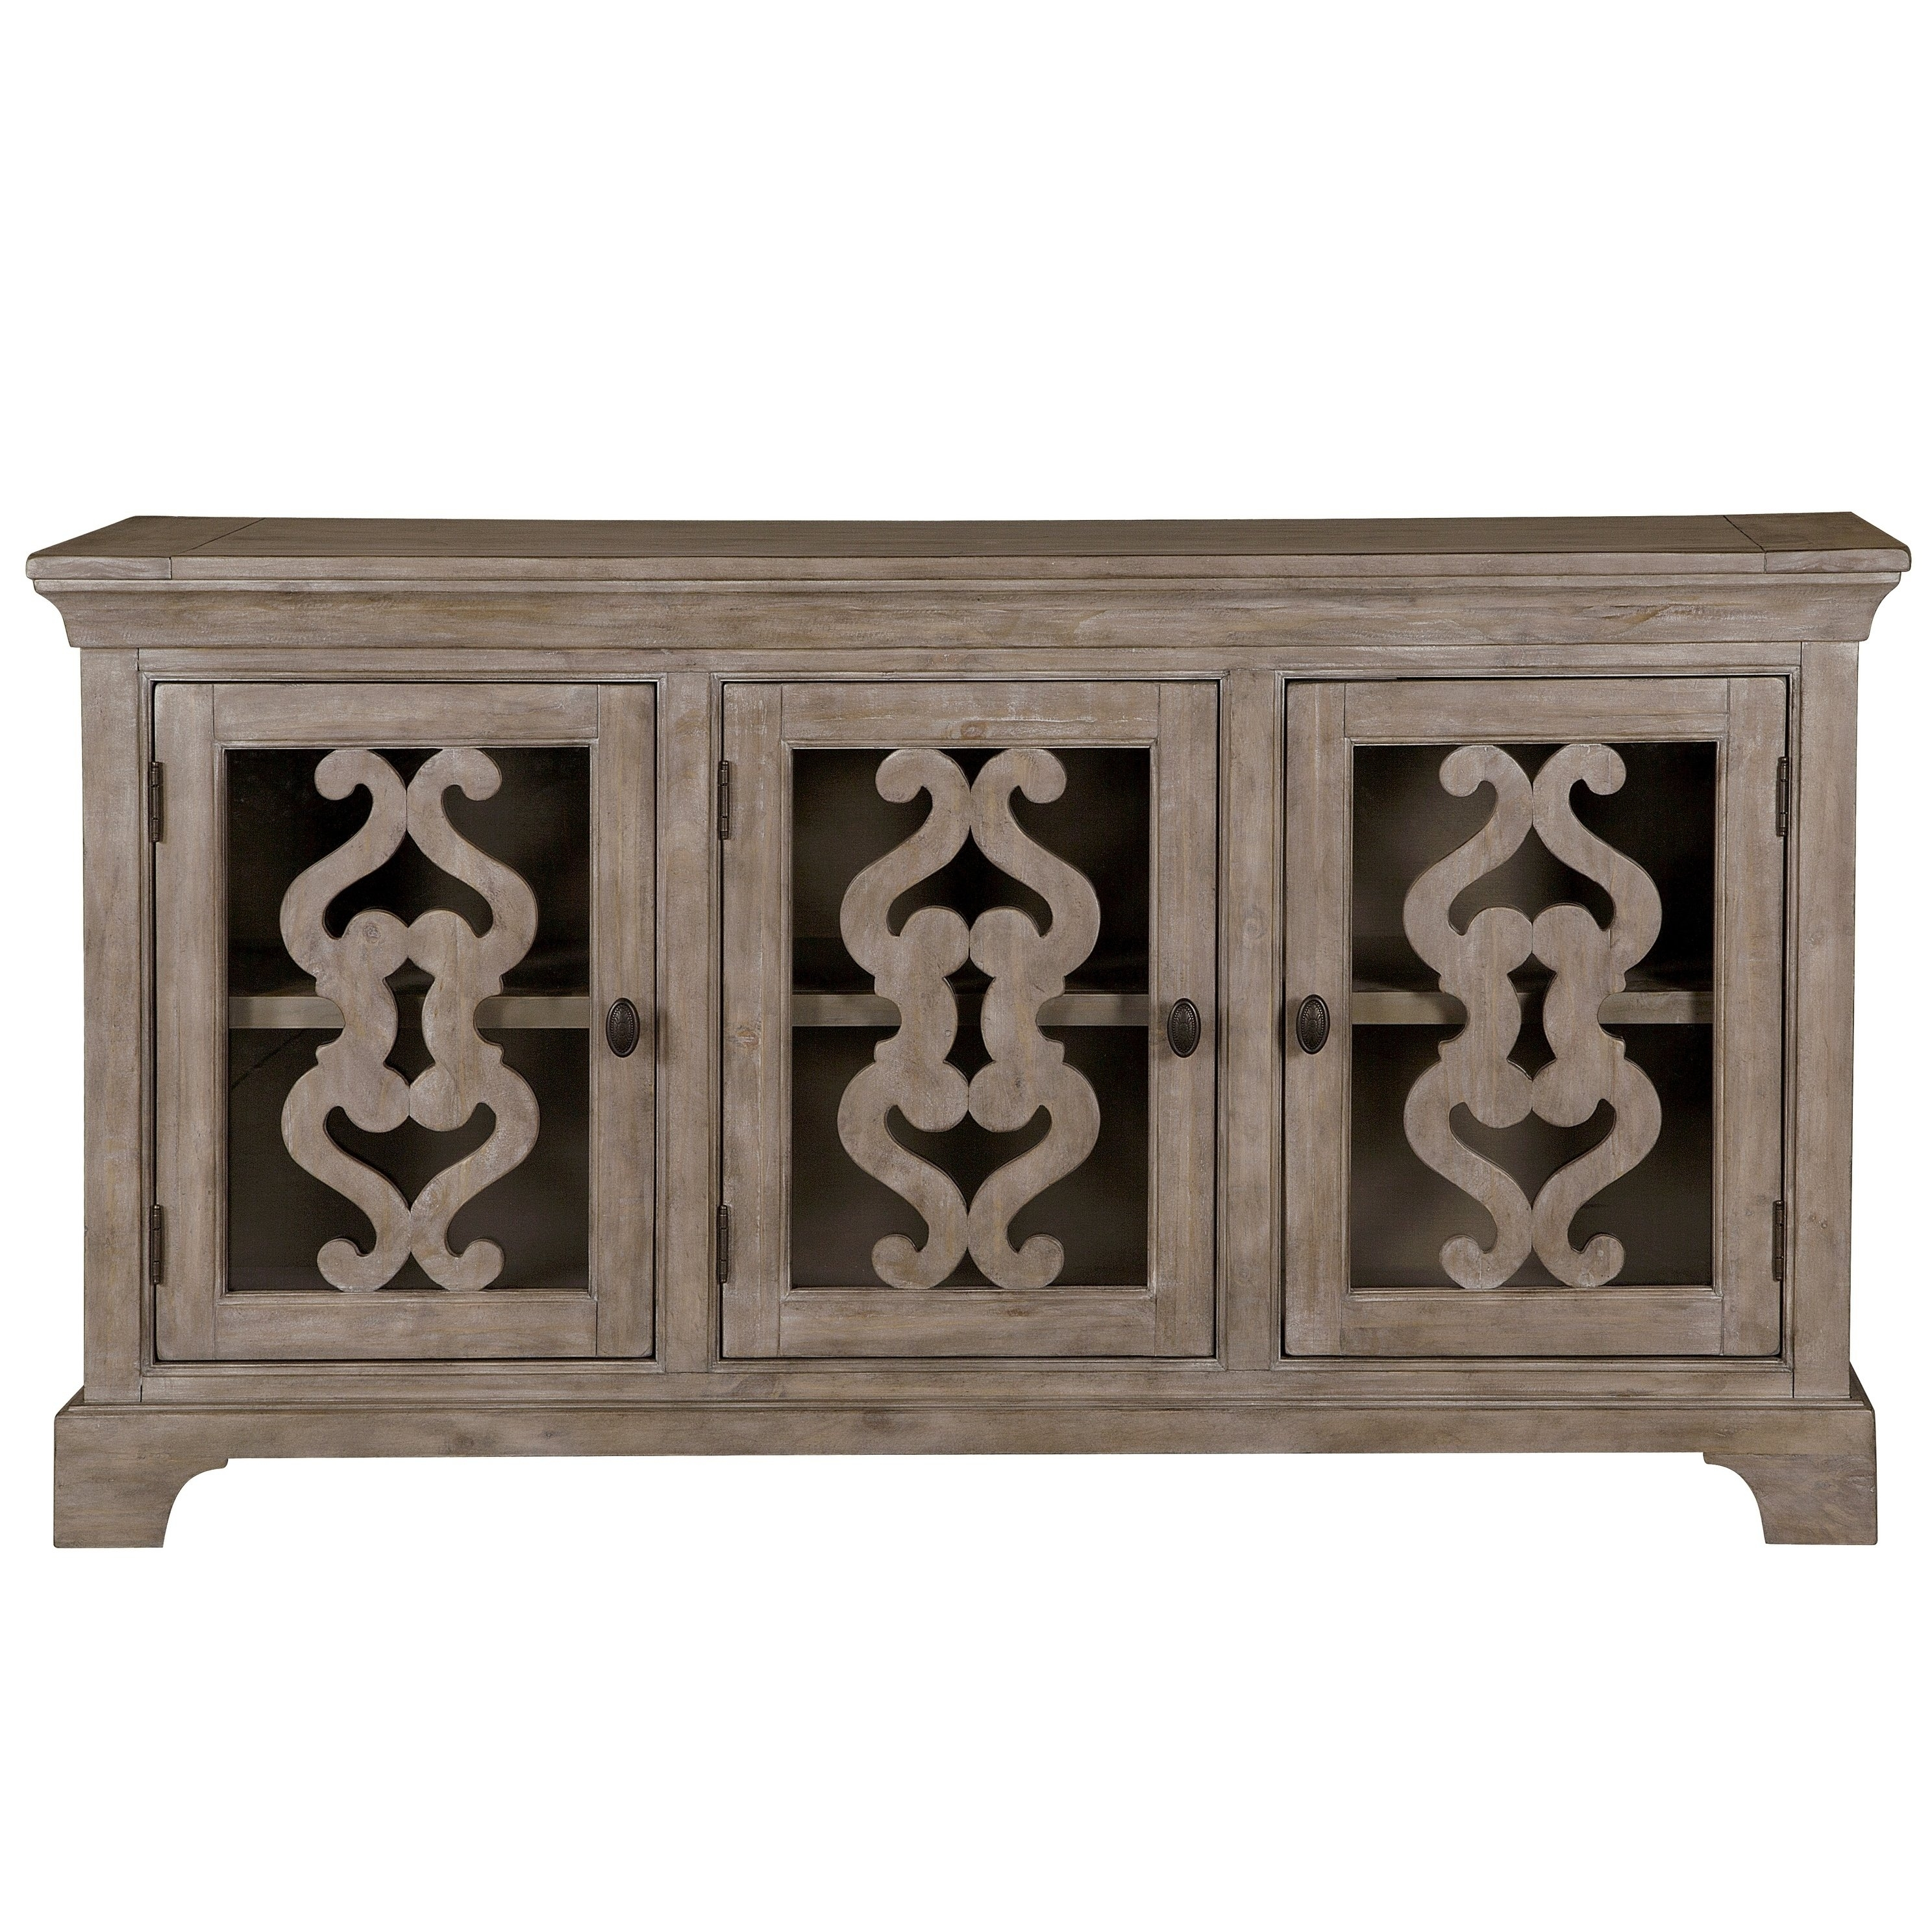 Shop Tinley Park Traditional Dove Tail Grey Server - N/a - Free intended for Norwood Sideboards (Image 21 of 30)